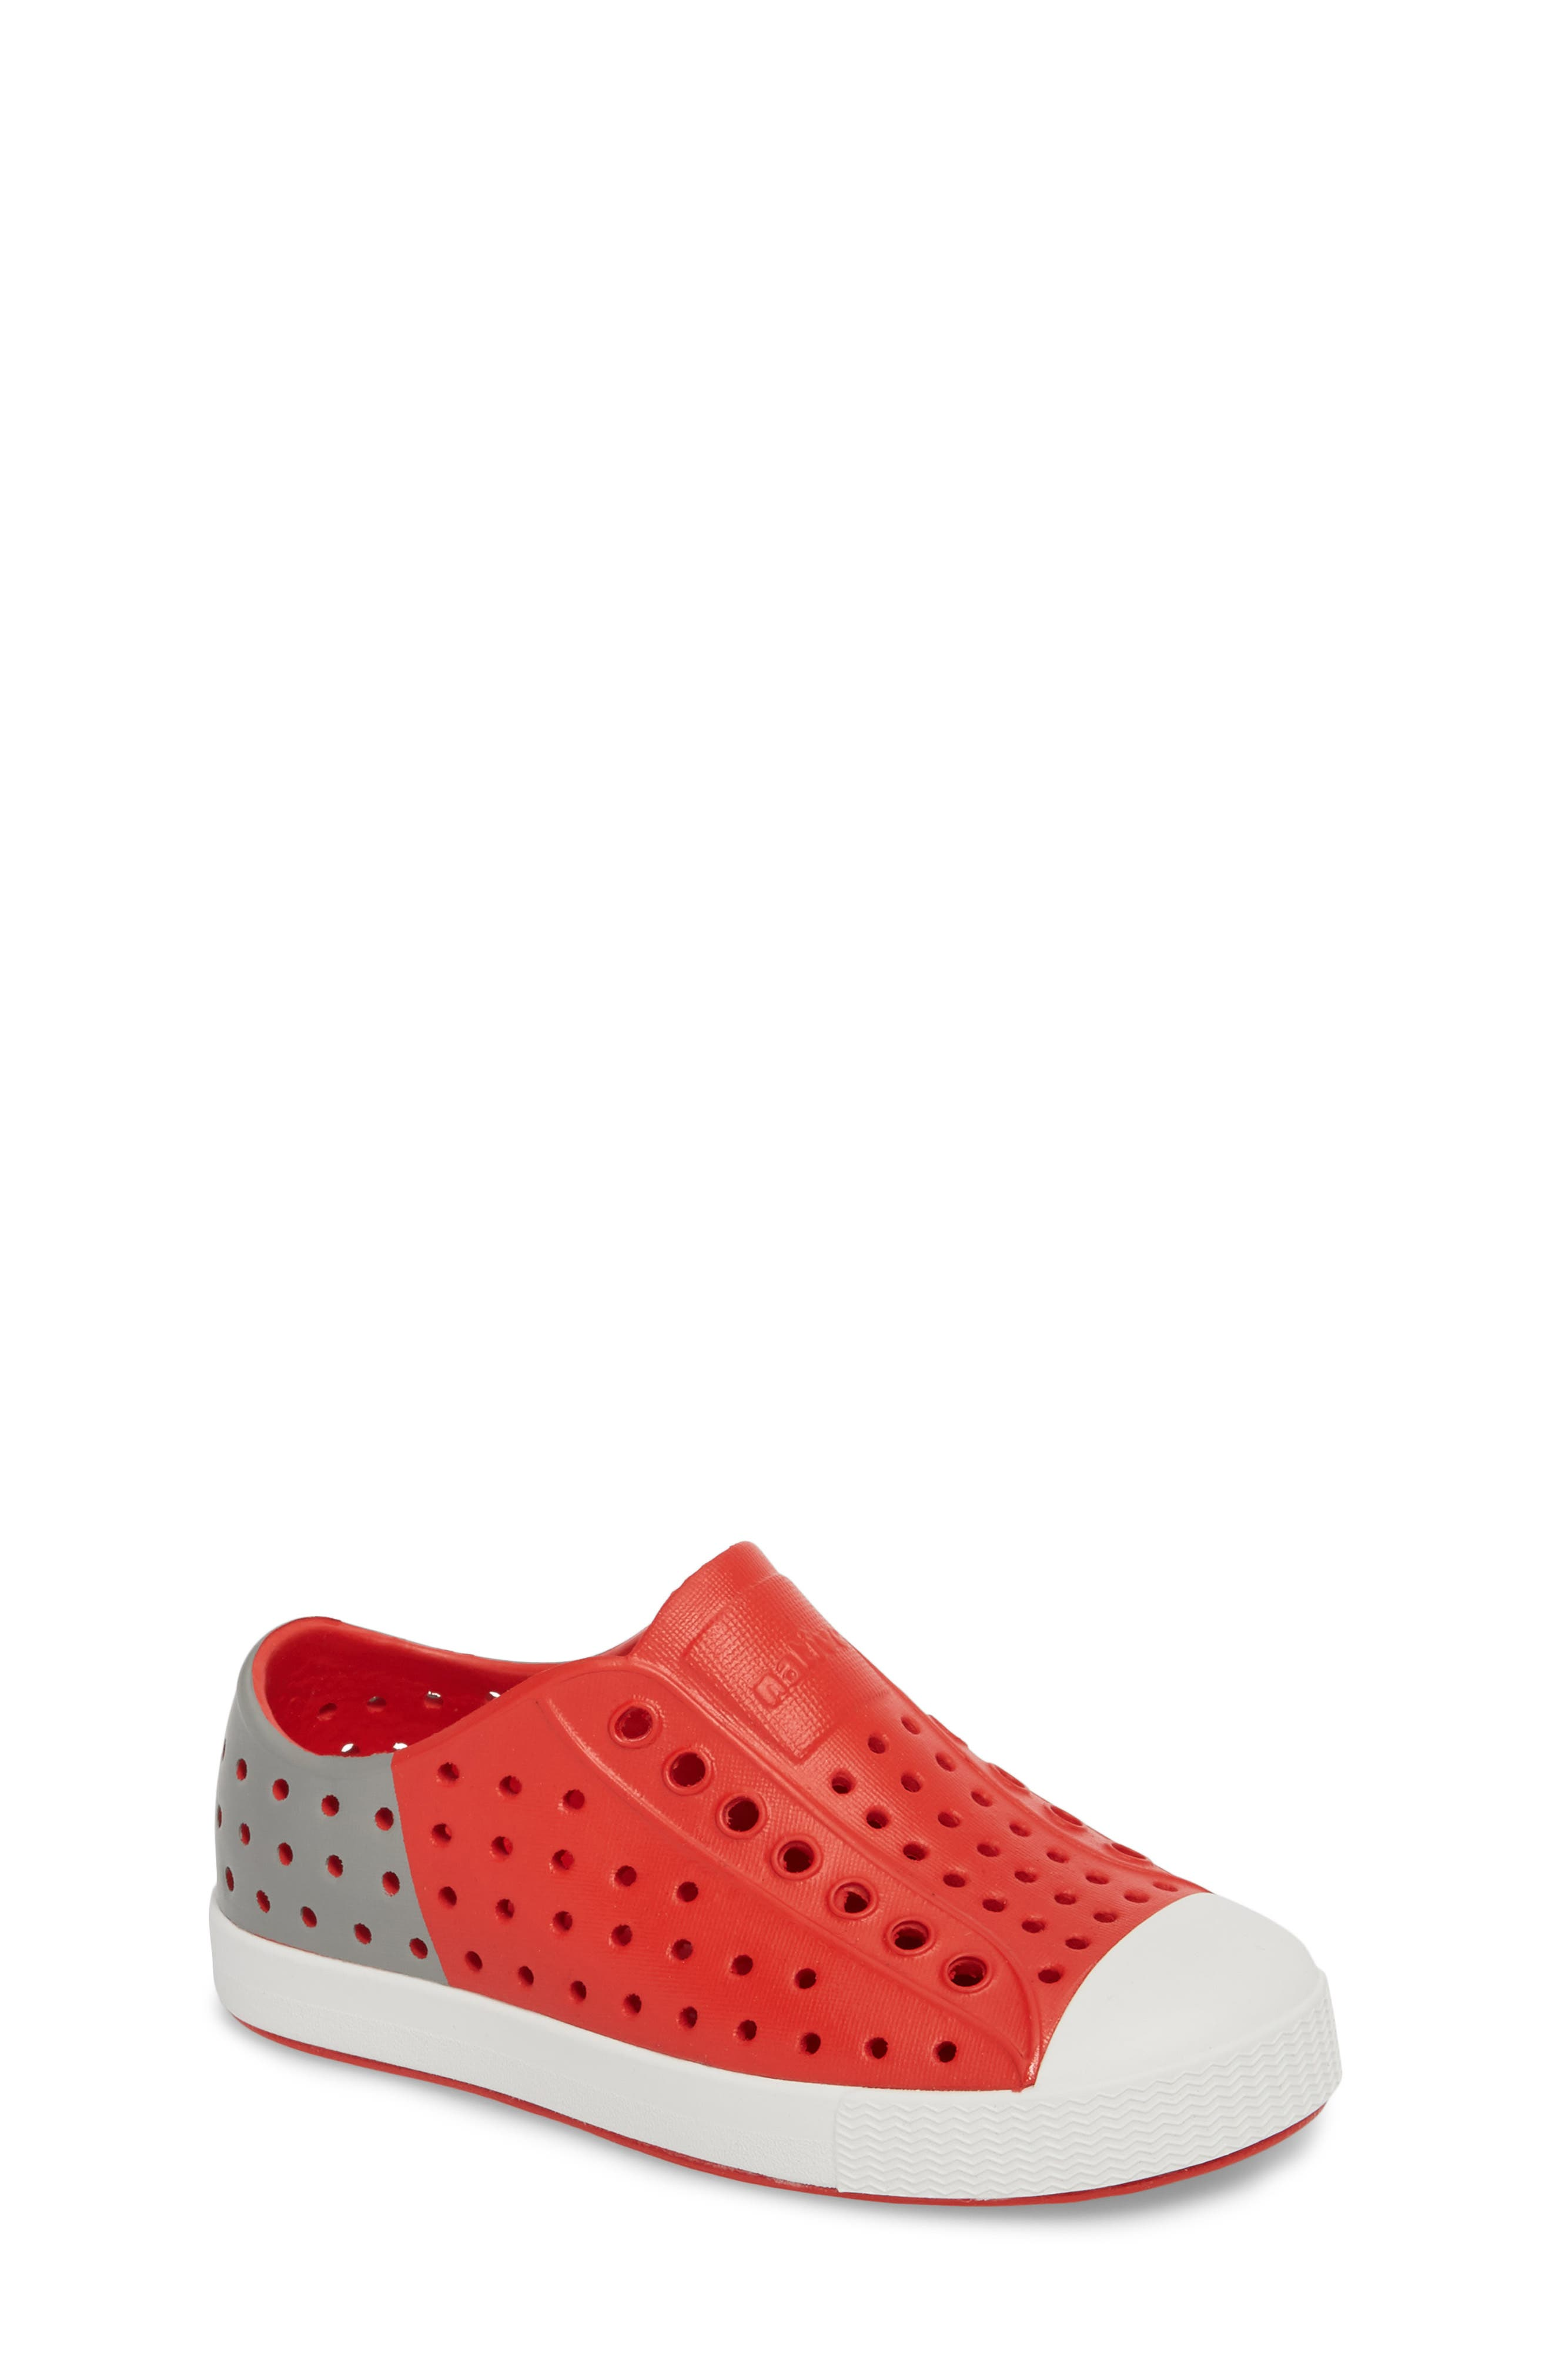 Native Shoes 'Jefferson' Slip-On Sneaker (Baby, Walker, Toddler, Little Kid & Big Kid)